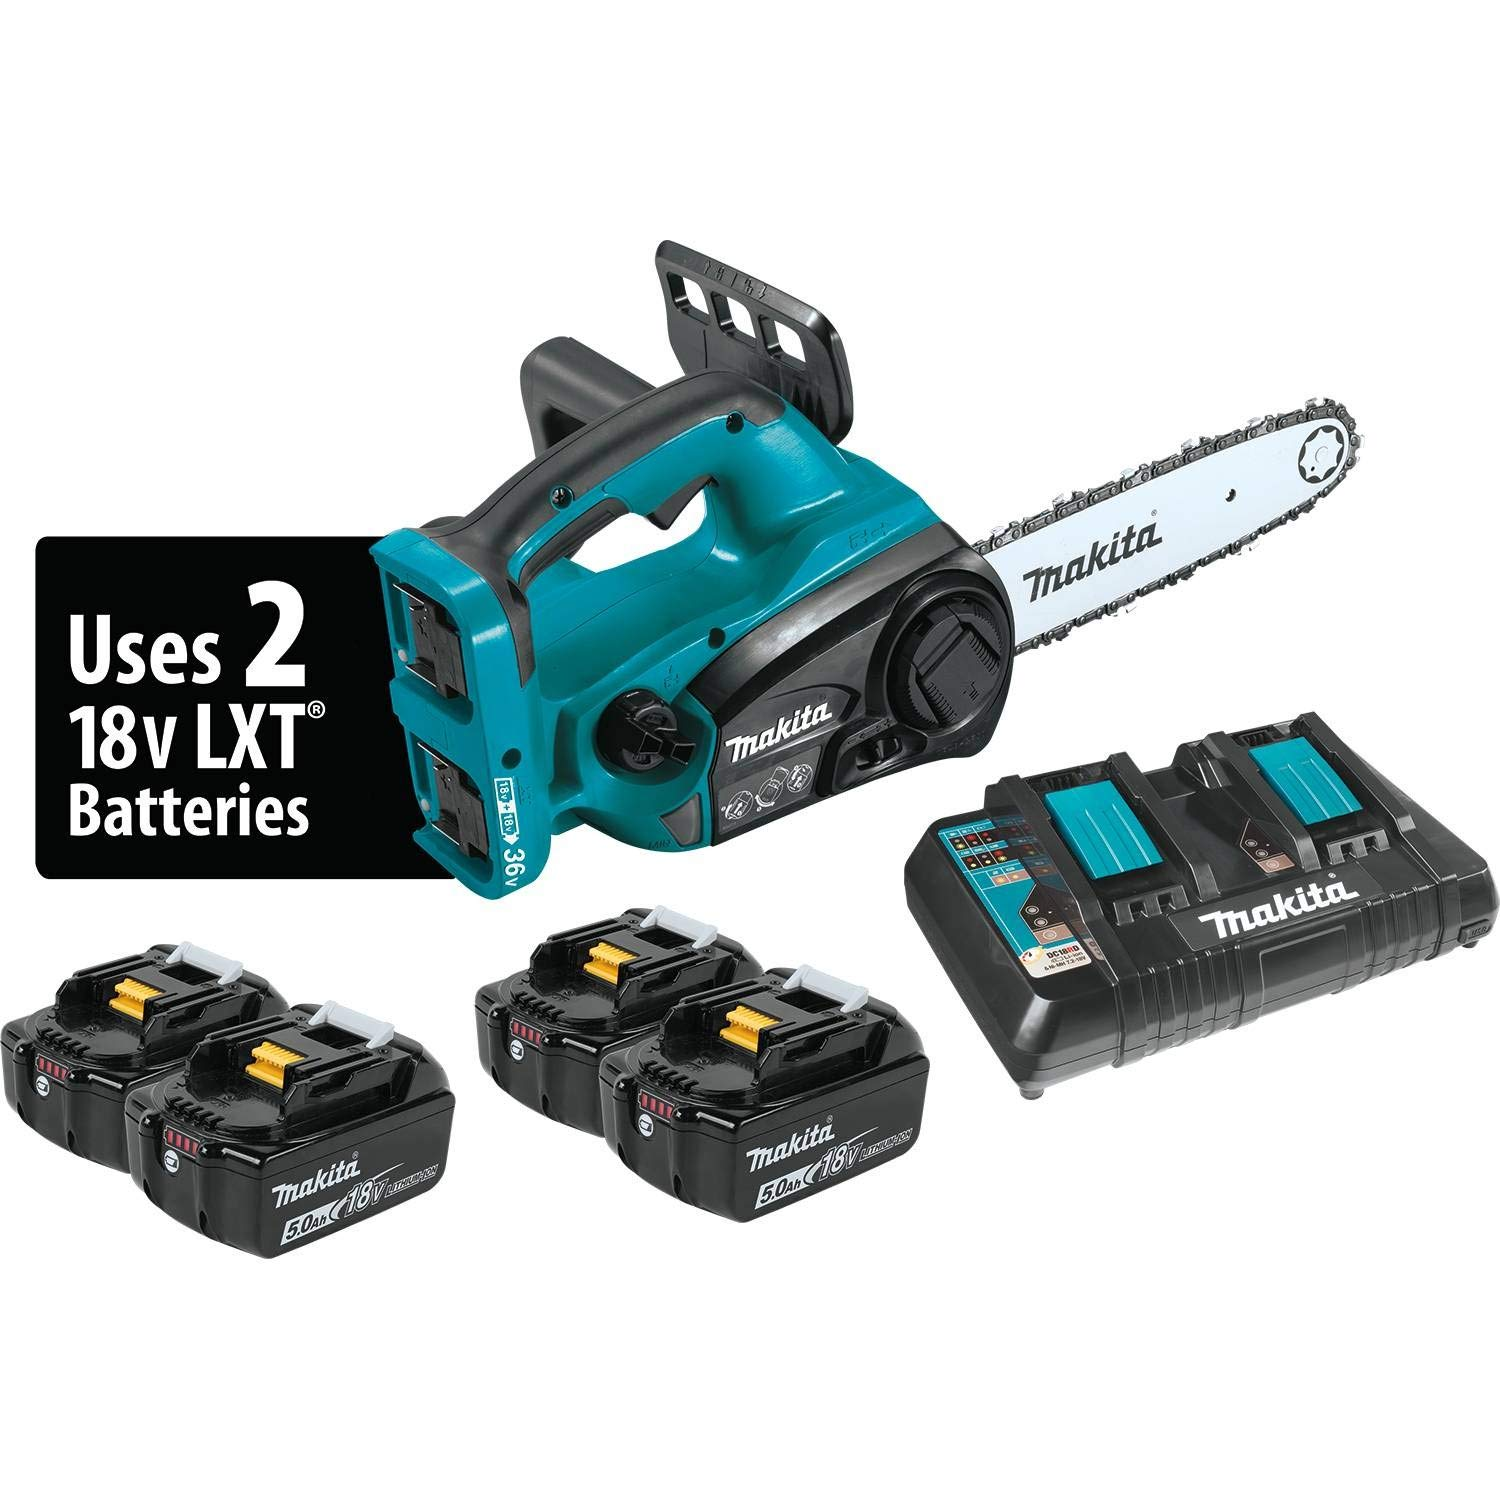 Makita XCU02PT1 Chainsaws product image 1